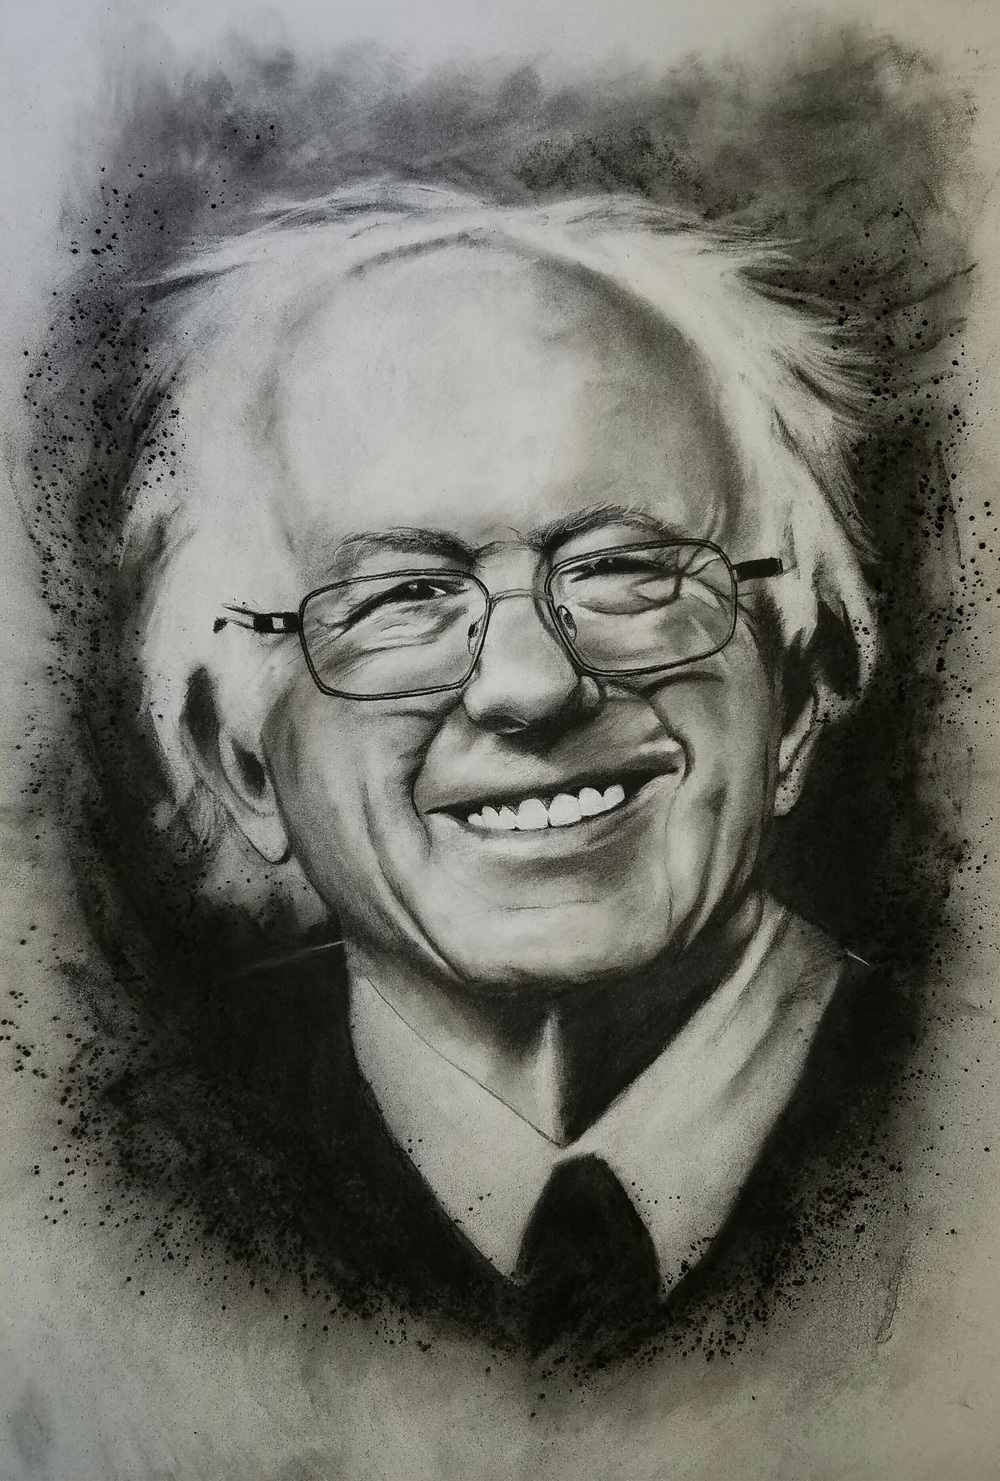 """Bernie Sanders"" -2016 Charcoal on Stonehenge. 16x24 in."